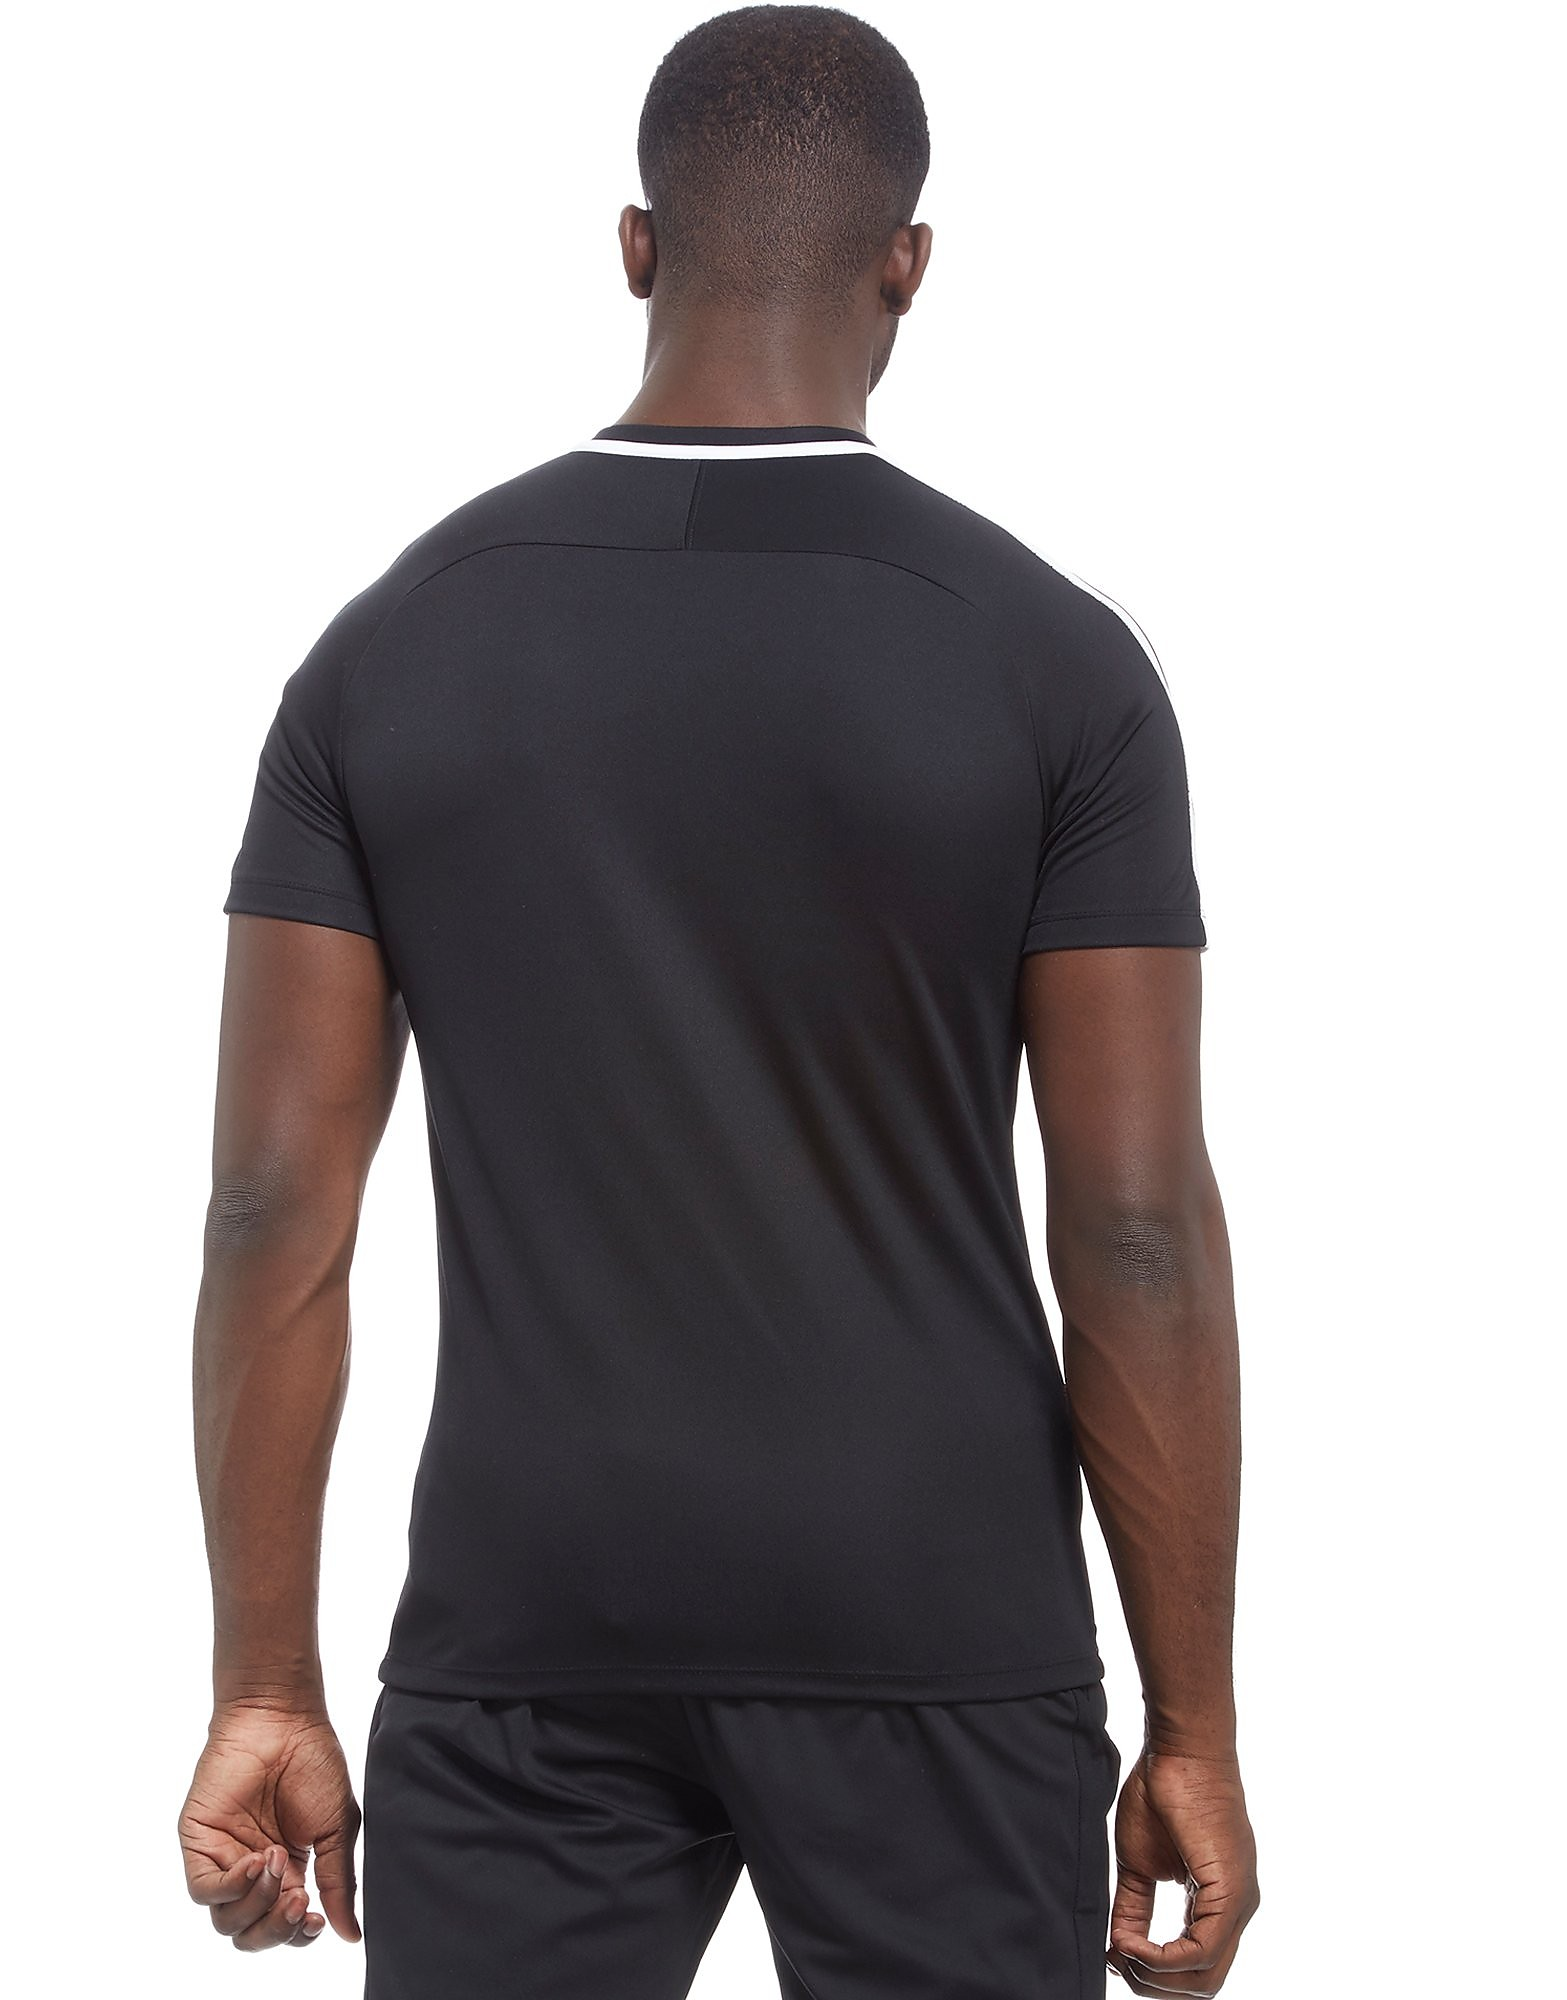 Nike Dry Academy T-Shirt